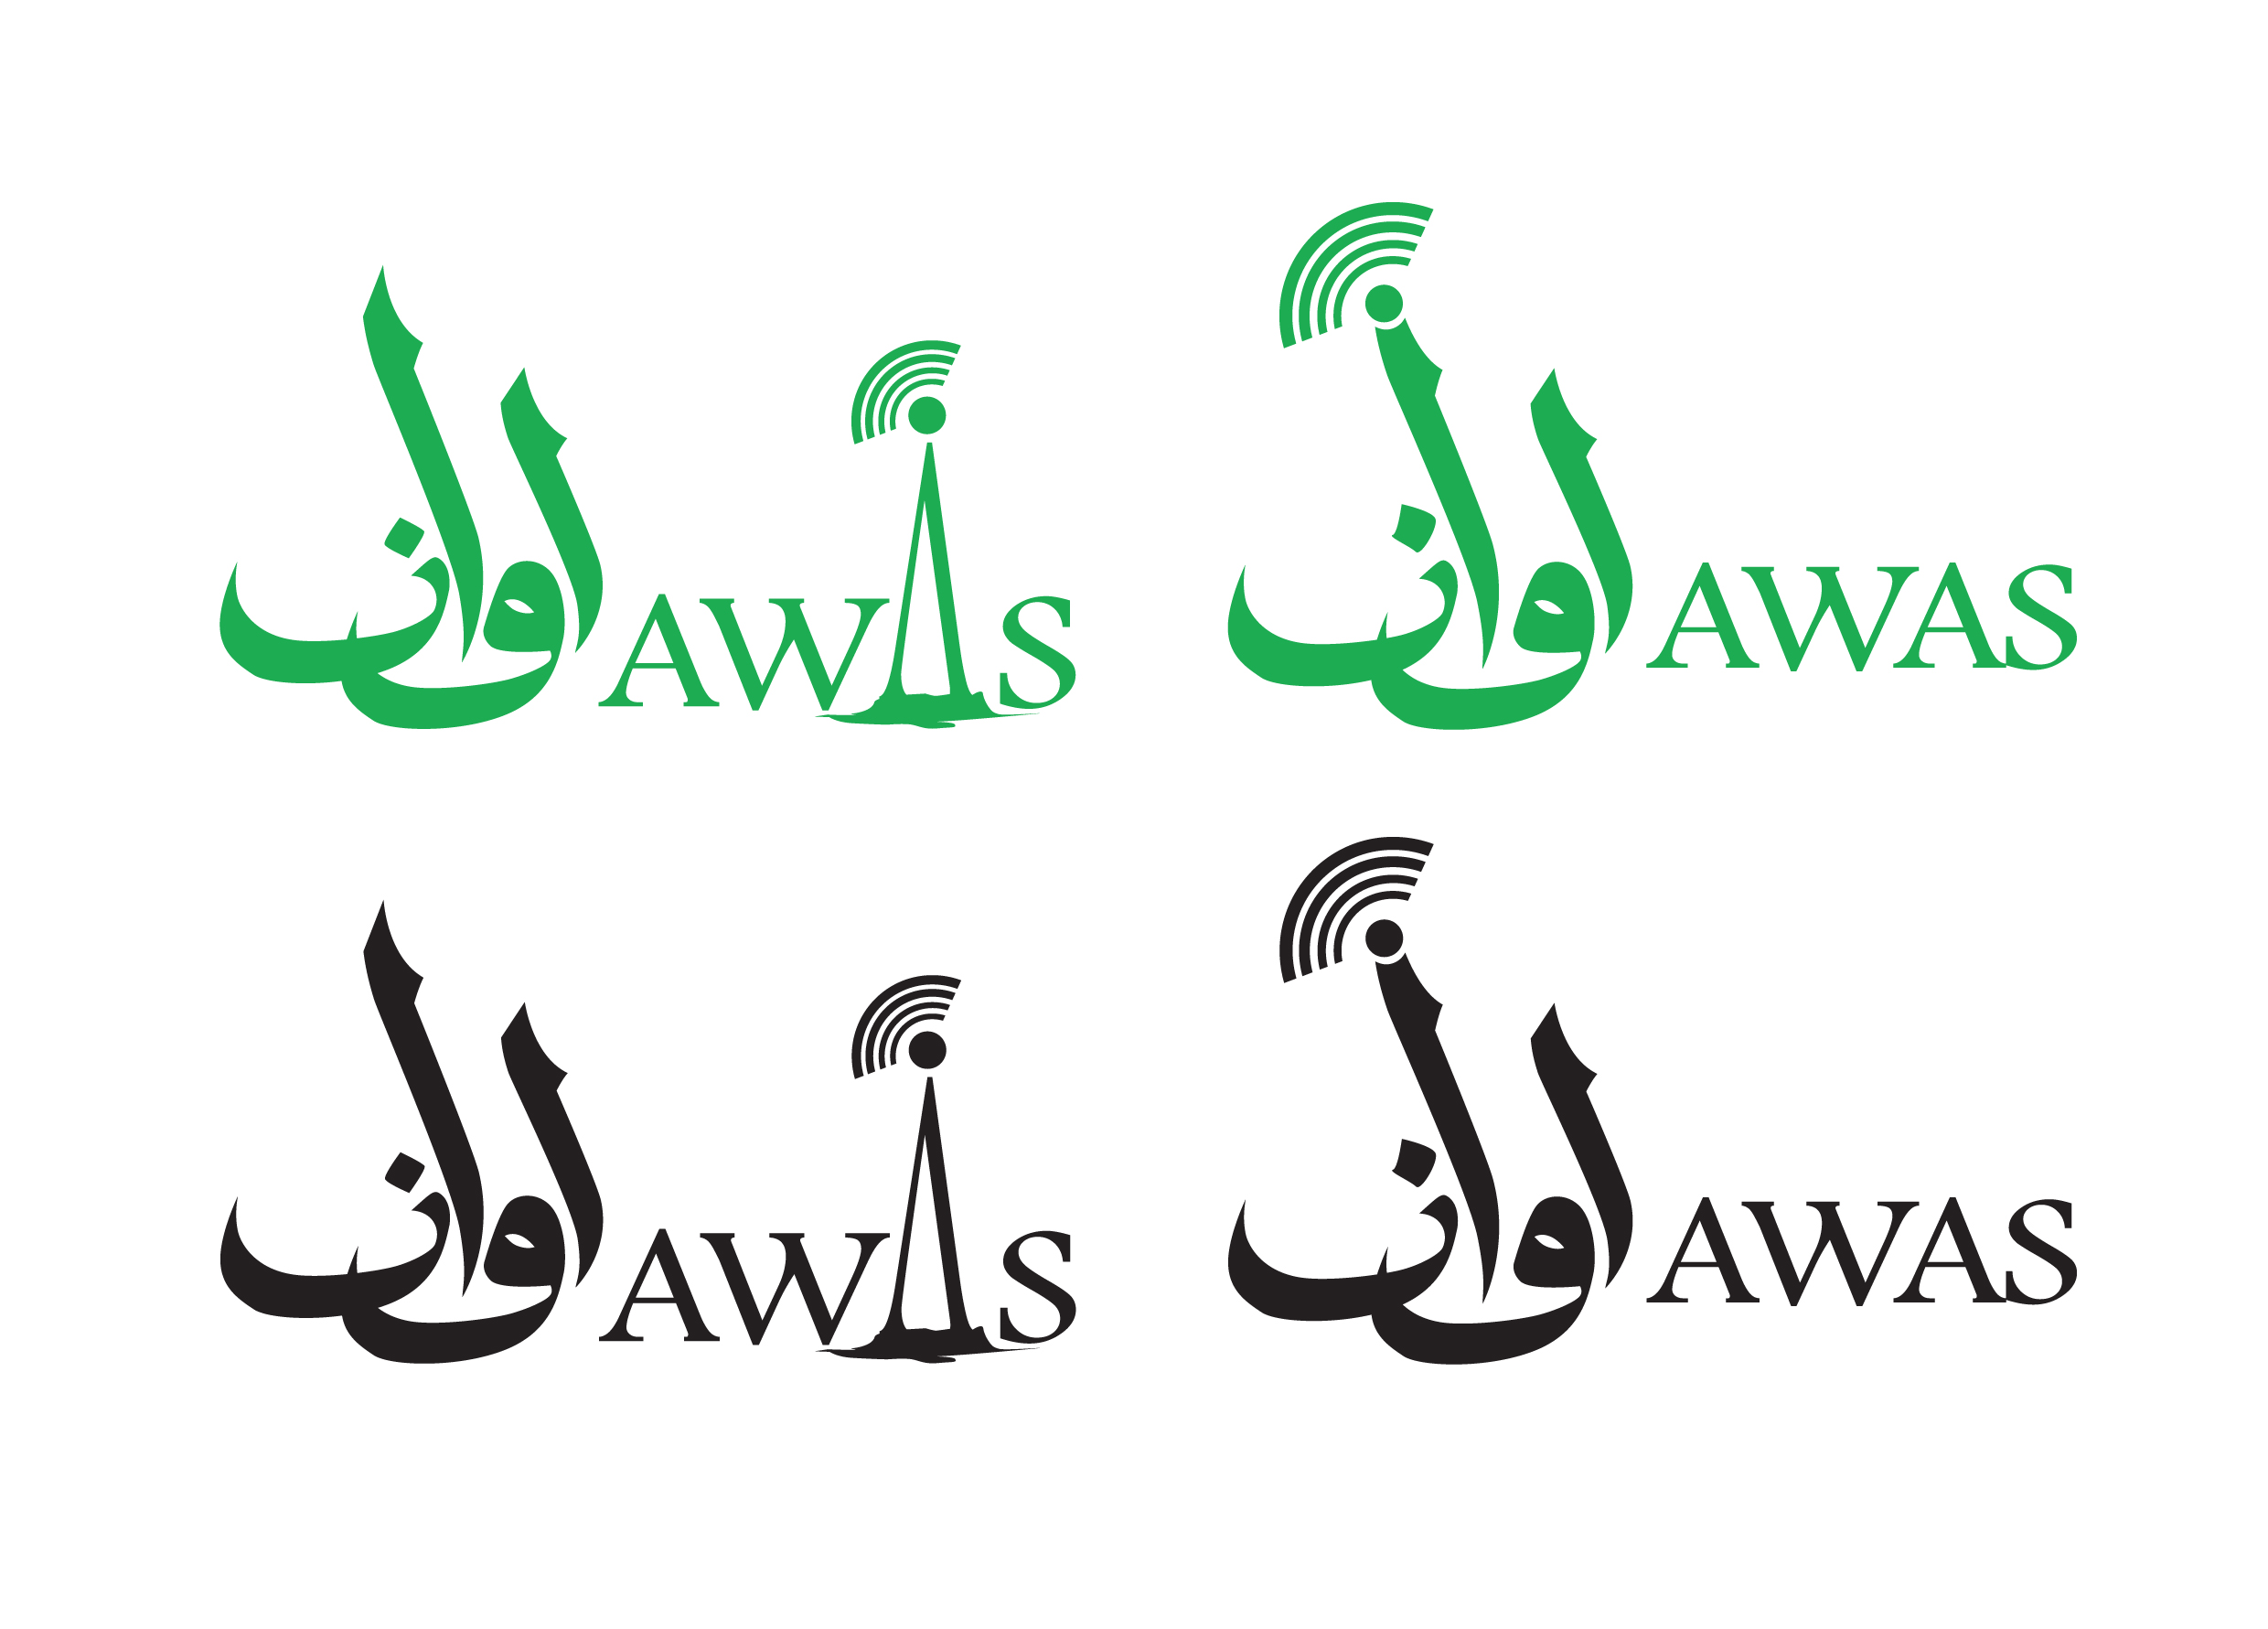 Logo Design by Hidayat Abu Bakar - Entry No. 66 in the Logo Design Contest AWAS Logo Design.